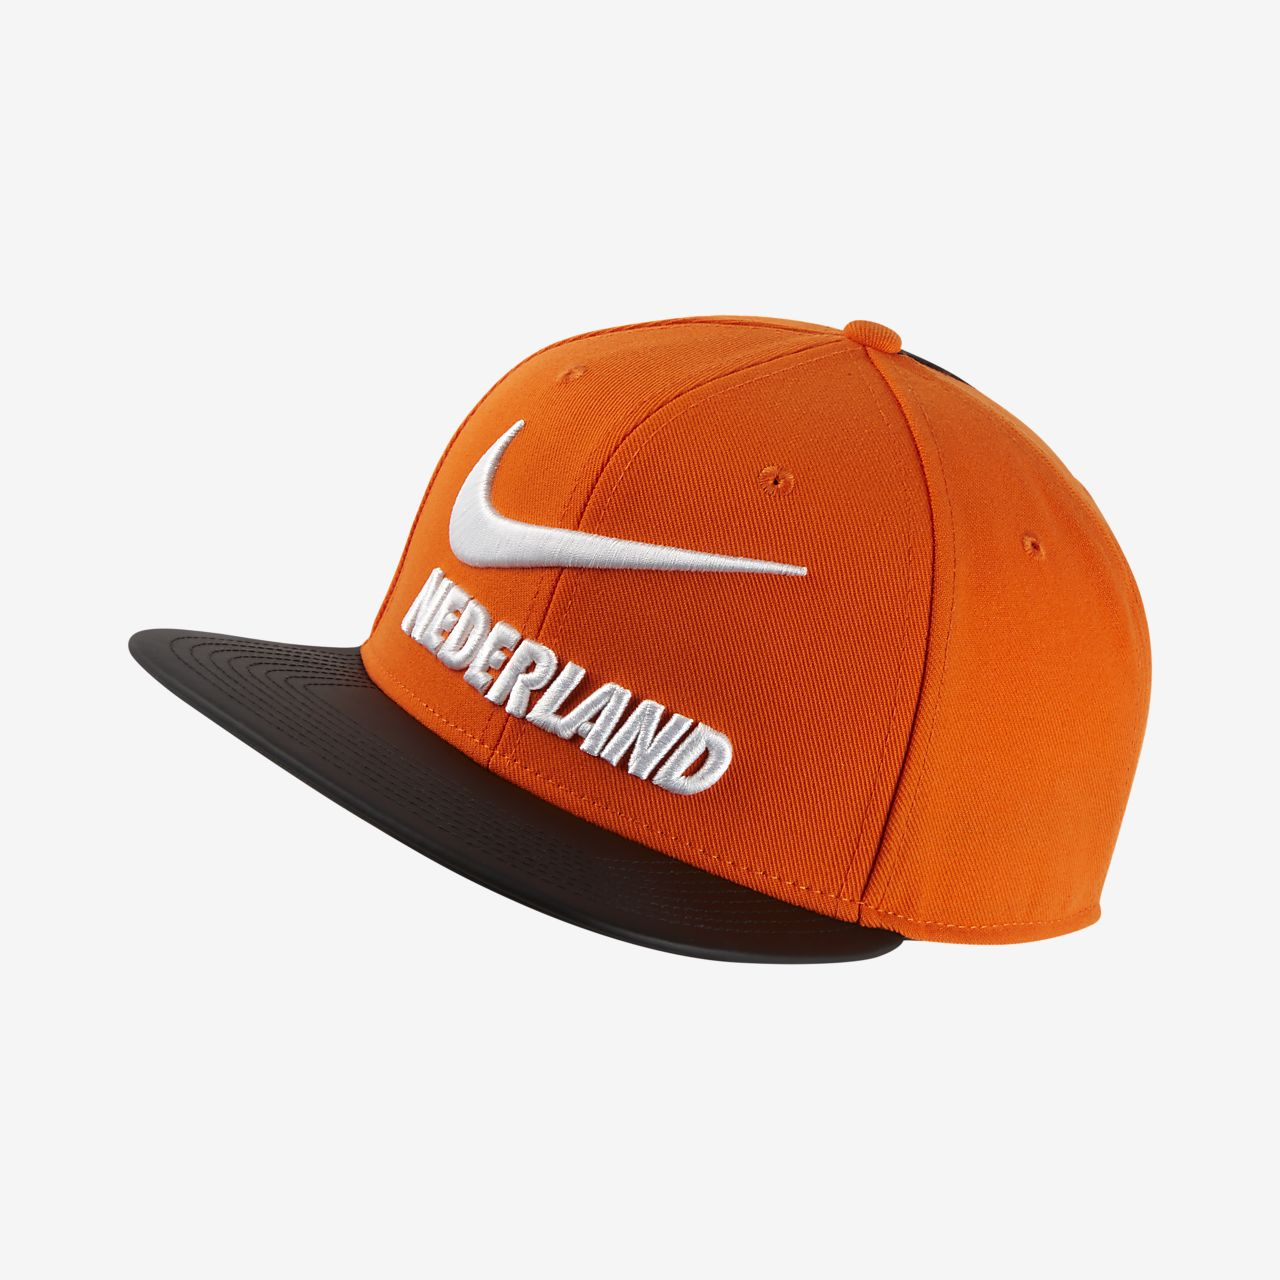 ... c7abc aa3a2 Cappello regolabile Netherlands Pro no sale tax  34dc8  141cb Nike ... 9a7d10c8fbc7